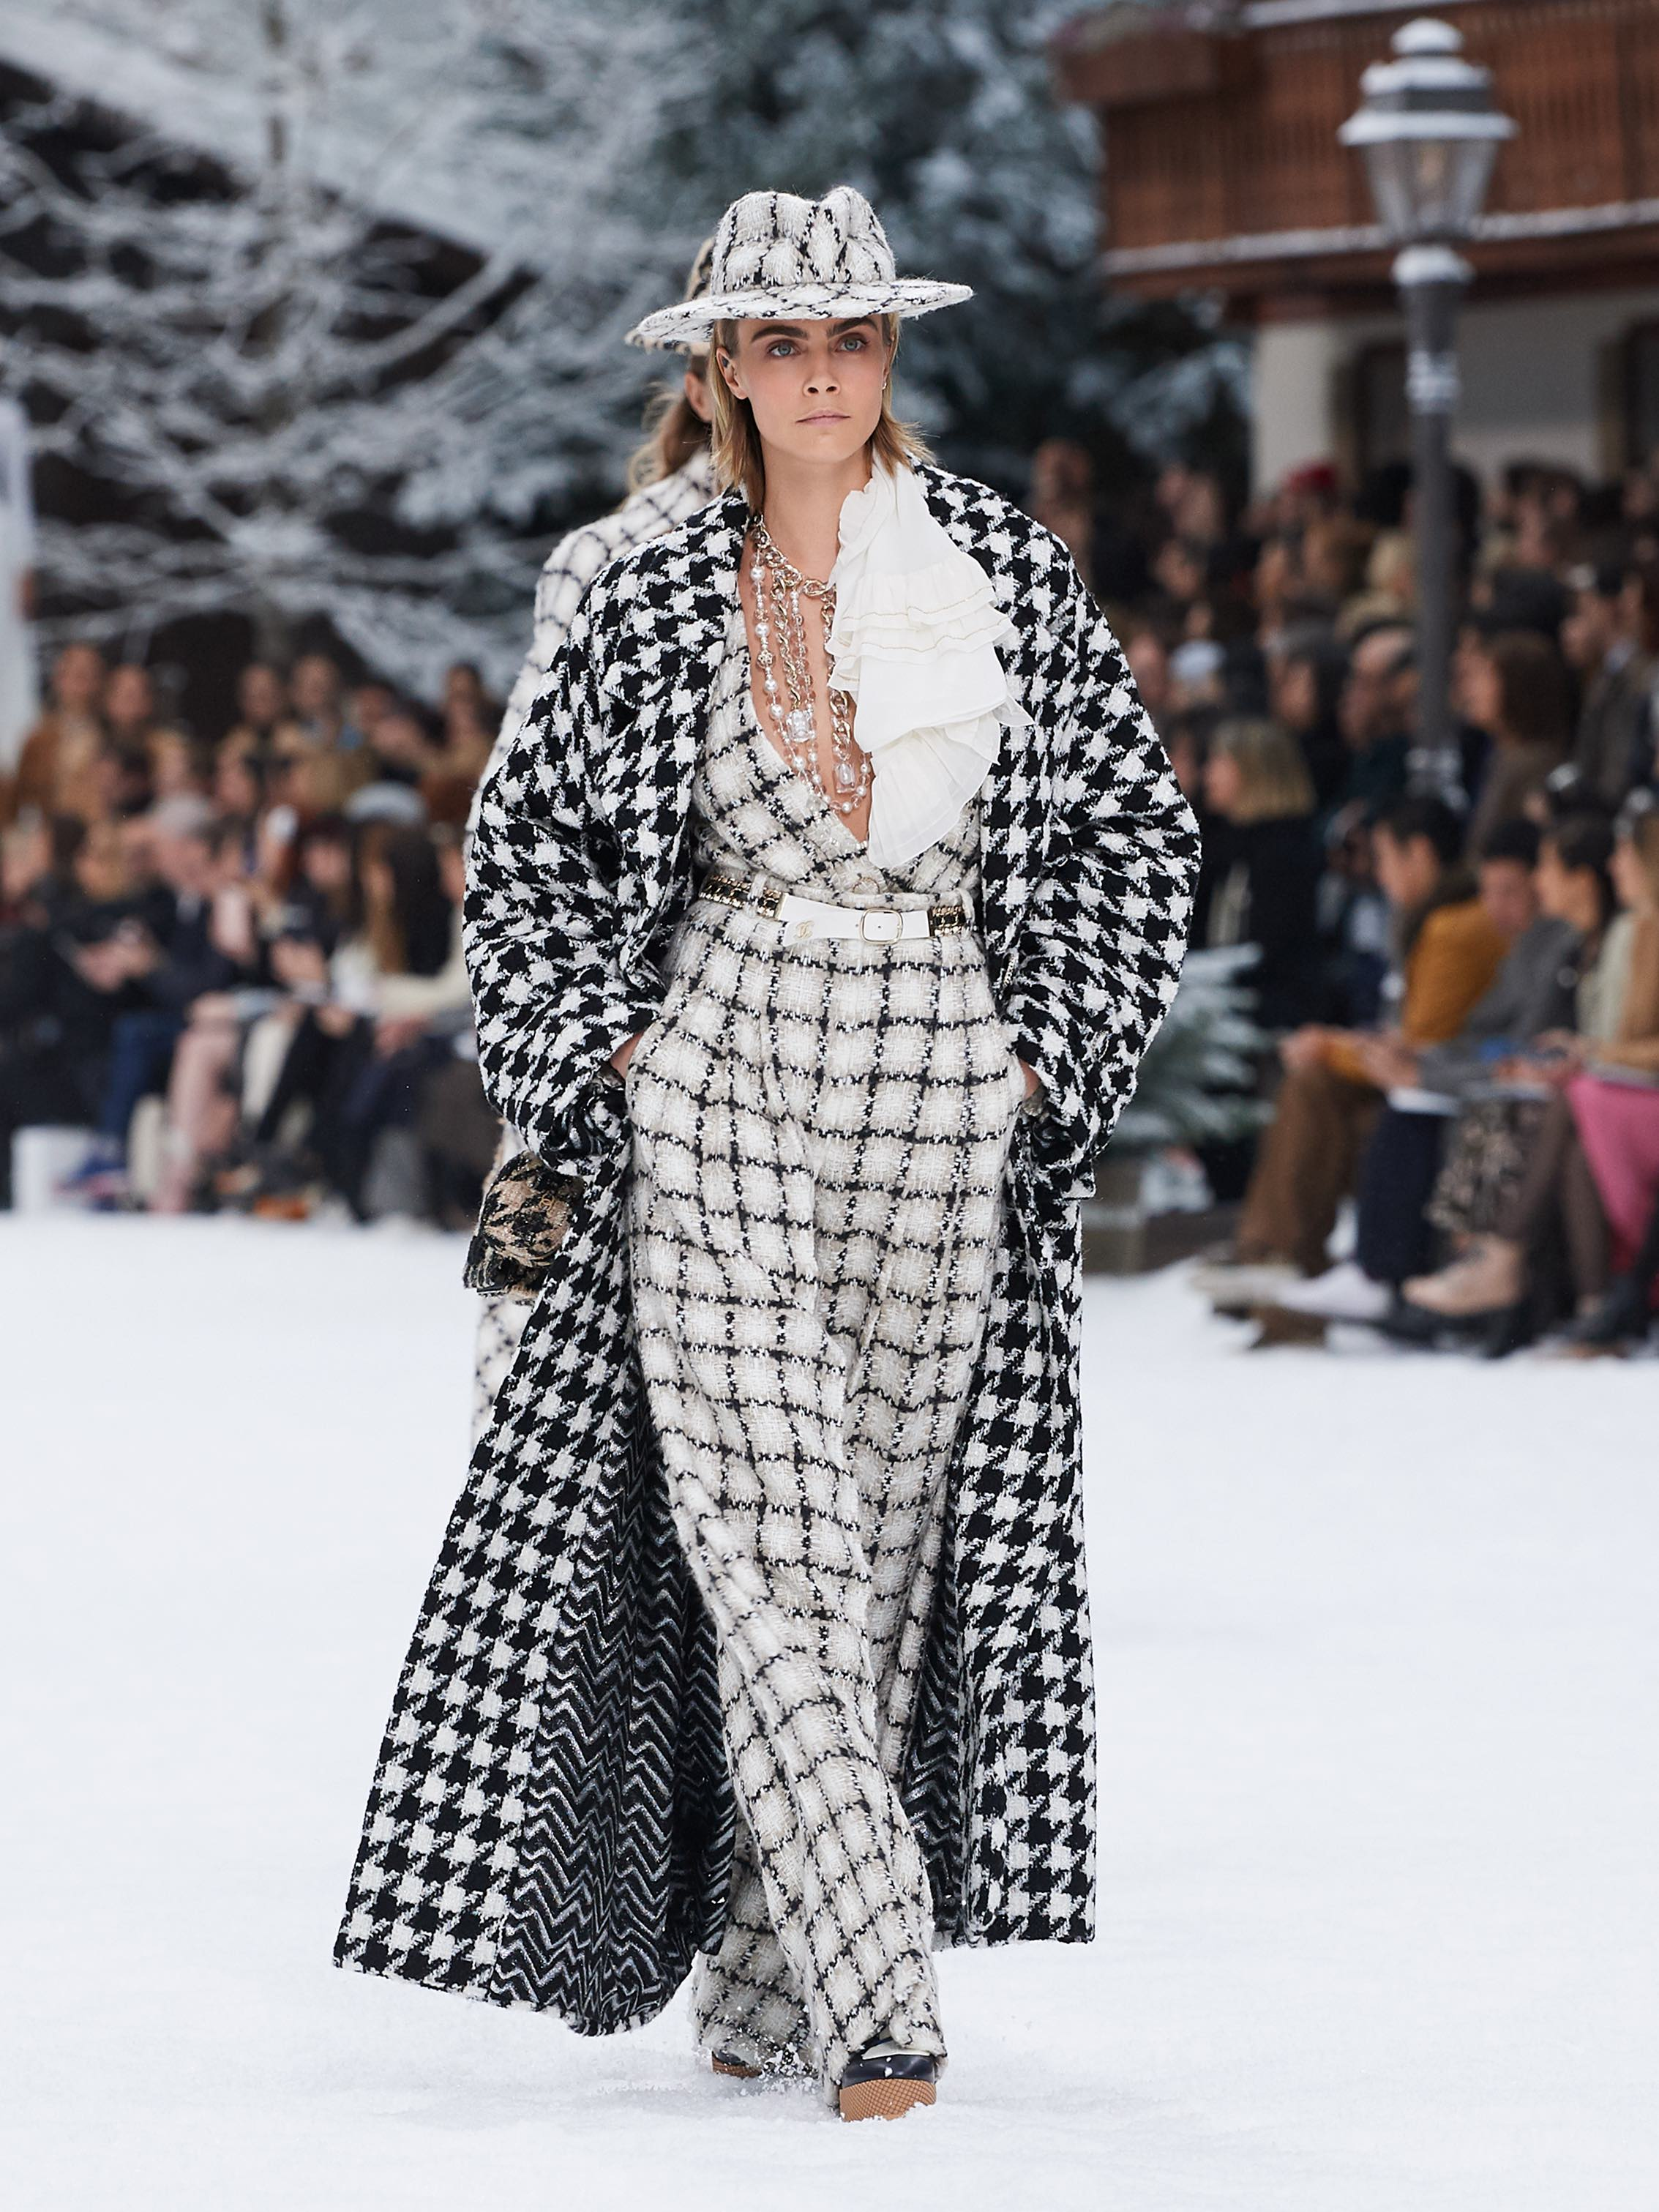 Chanel AW19 Paris Fashion Week show Cara Delevingne